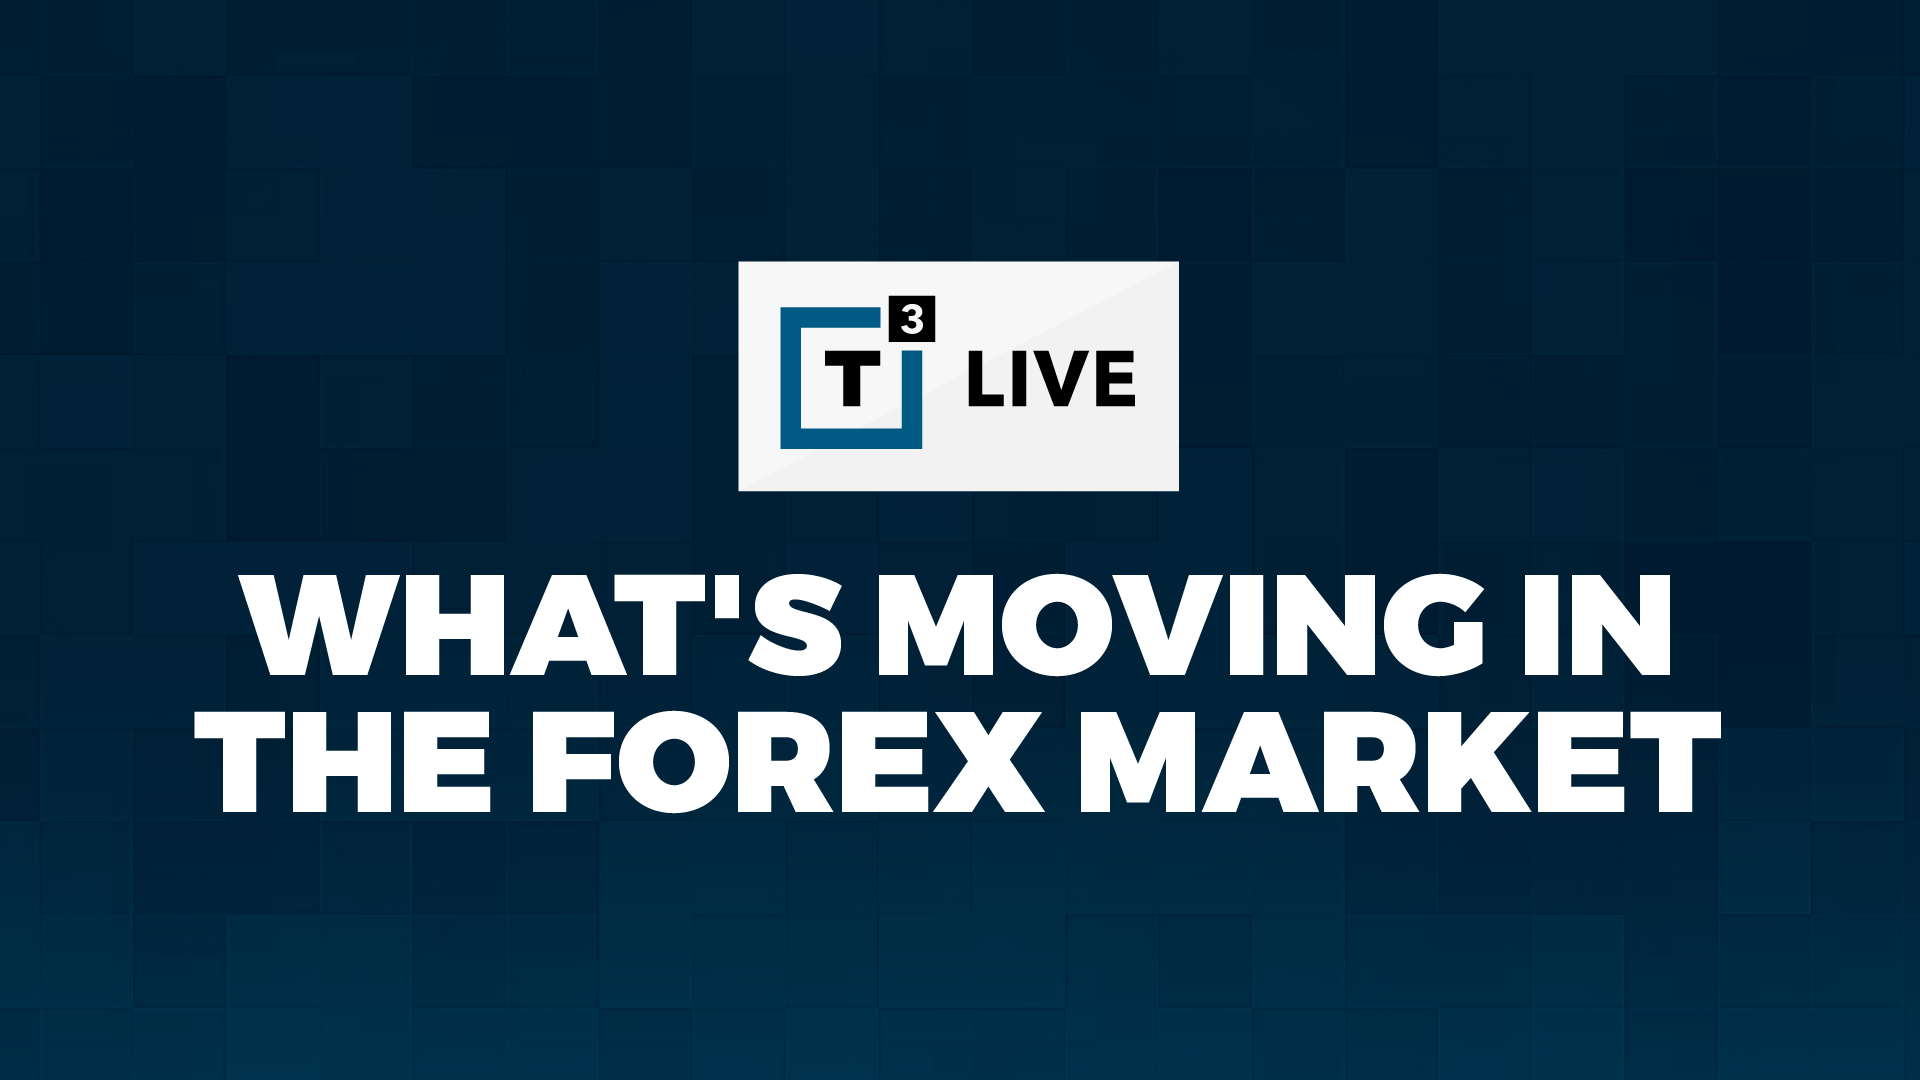 What's swap in forex